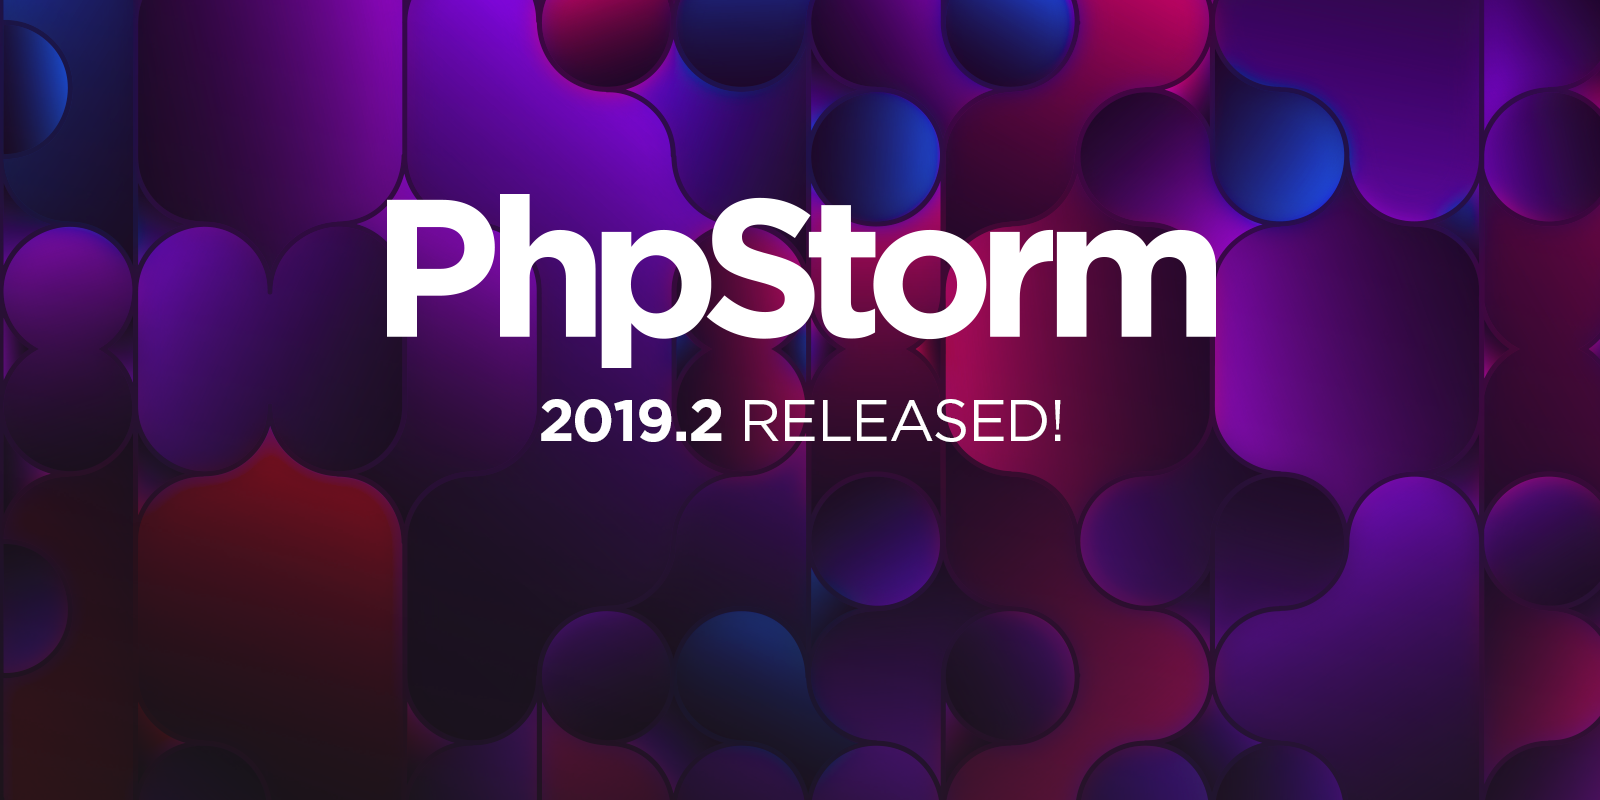 PhpStorm 2019.2 released